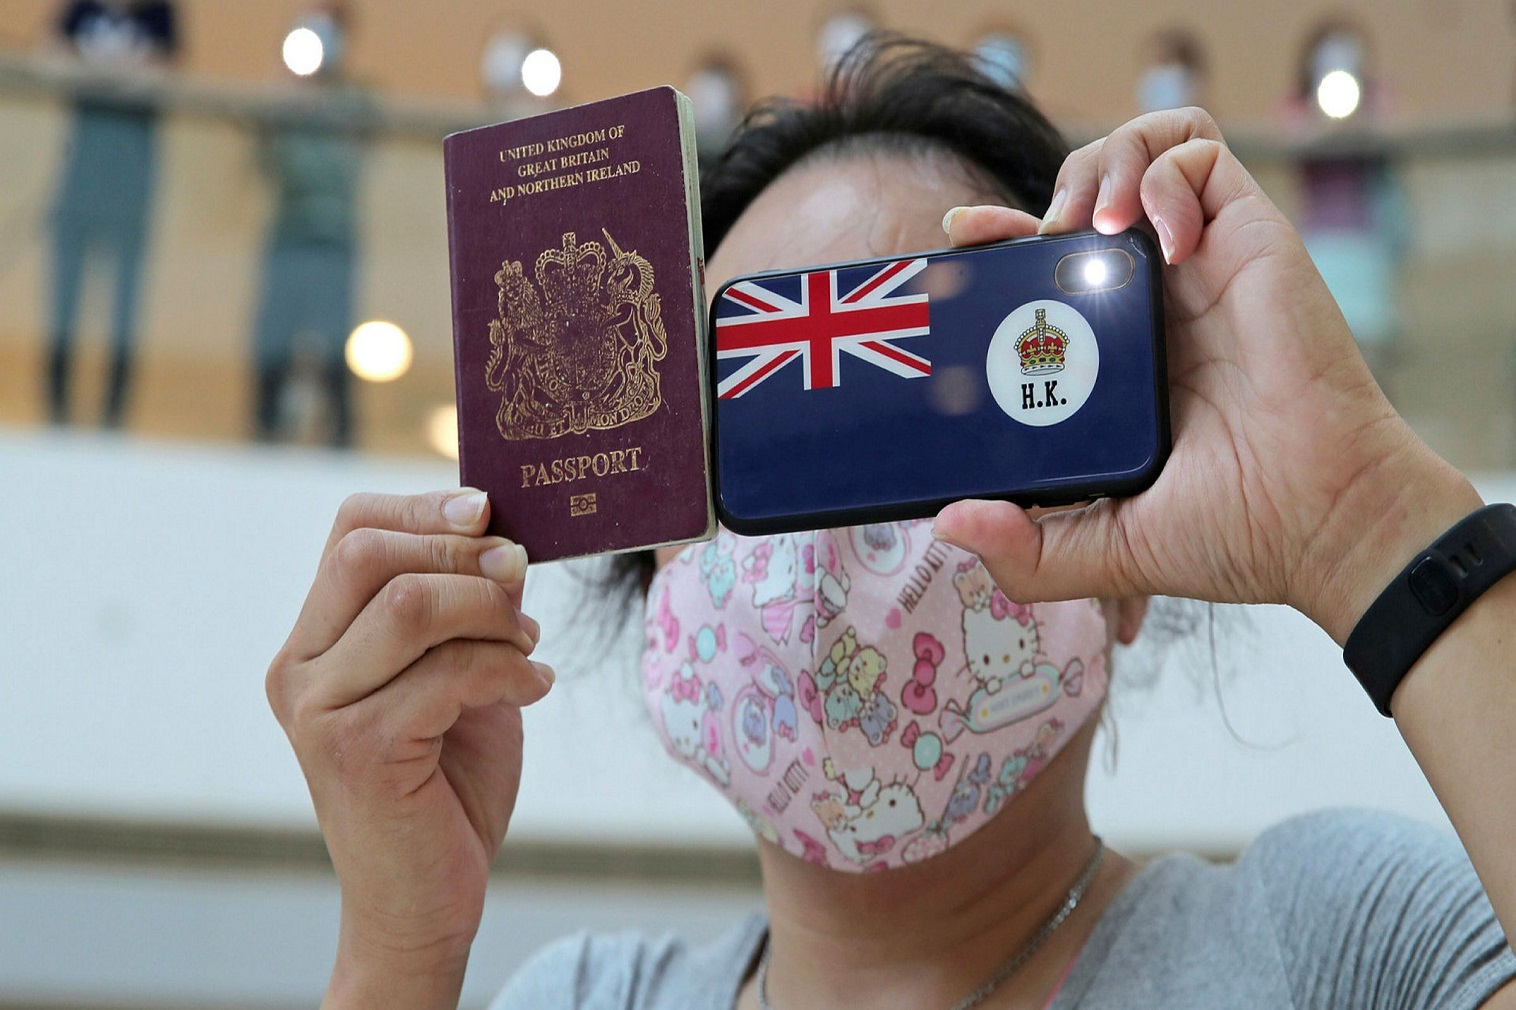 New immigration rules will allow BN(O) citizens the right to live and work in the UK for longer and give a path to full British citizenship.